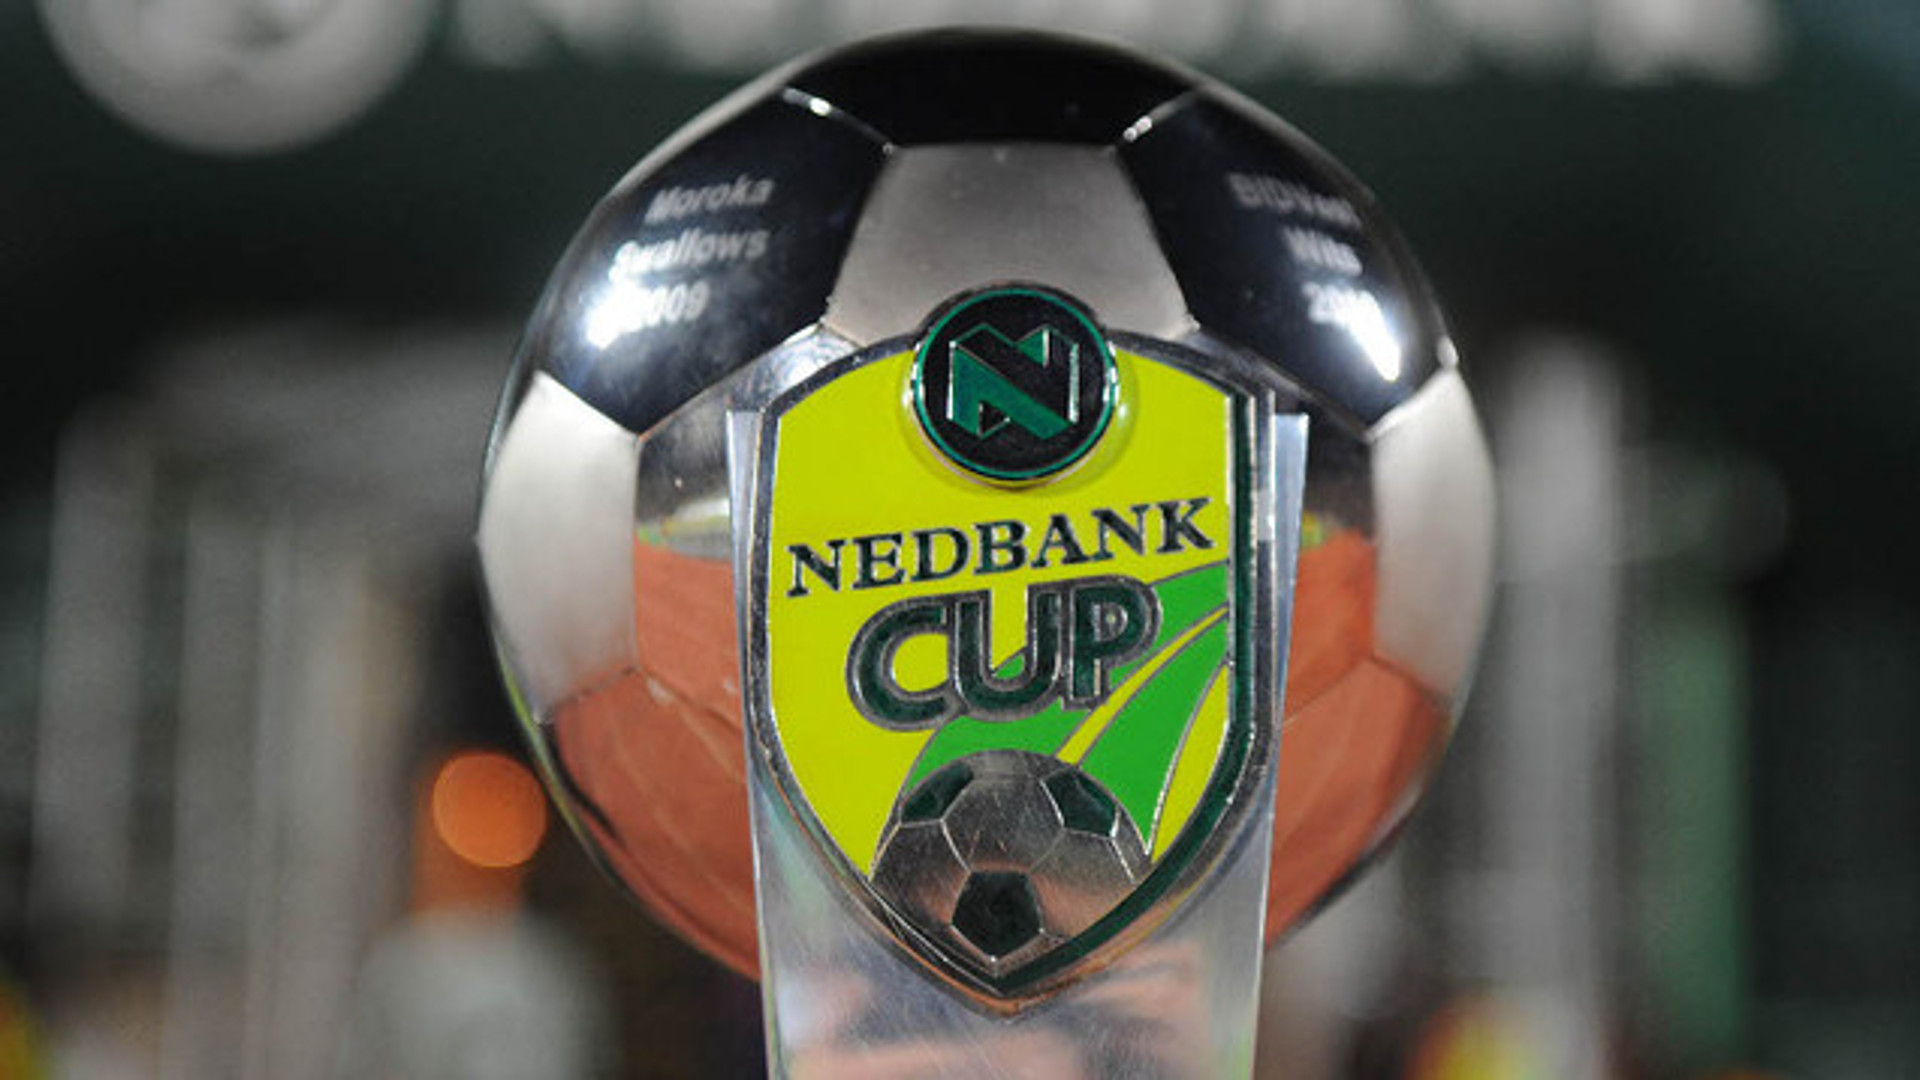 Nedbank Cup | Preview